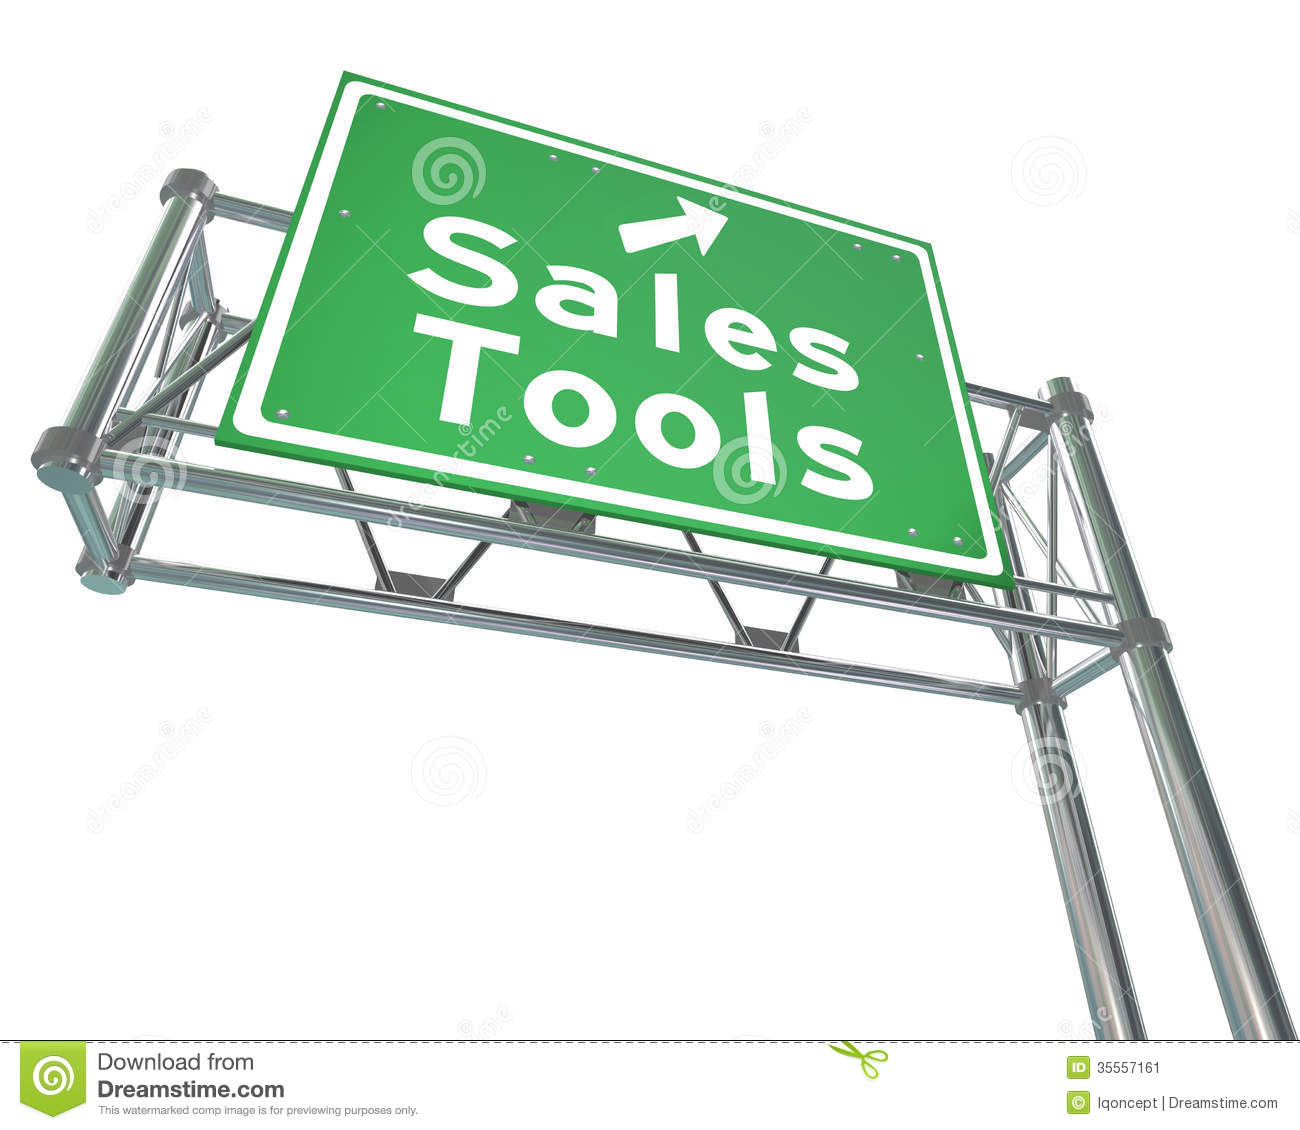 Sales Tools Road Freeway Sign Selling Techniques Stock Image ...